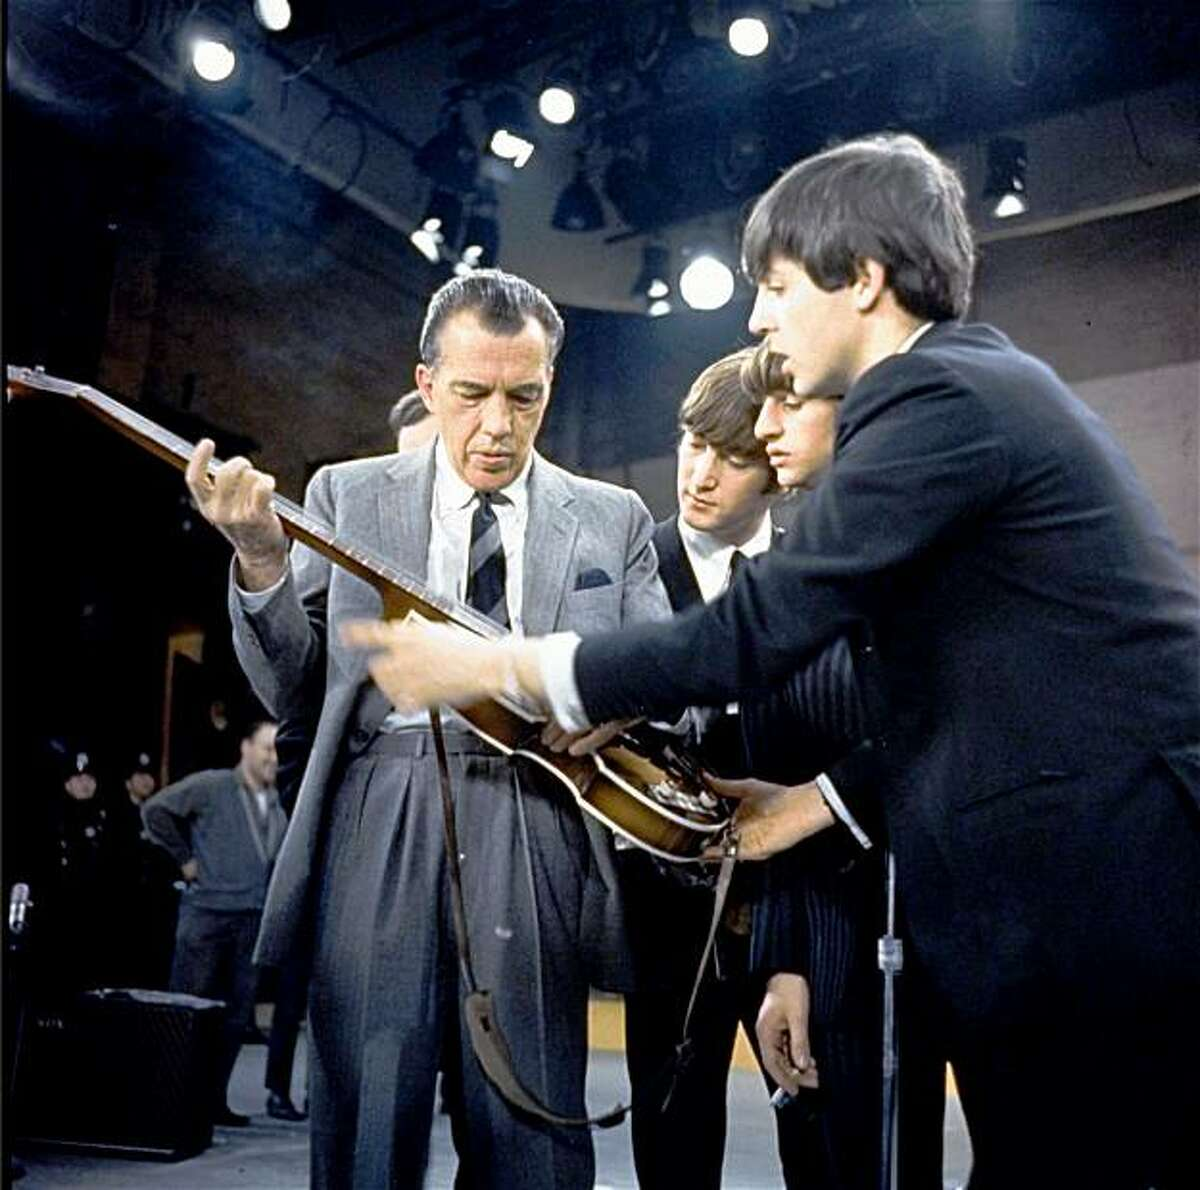 Three of the Beatles show a guitar to Ed Sullivan on stage Feb. 9, 1964 before their performance on his CBS television show in New York. From right are Beatles Paul McCartney, Ringo Starr and John Lennon.